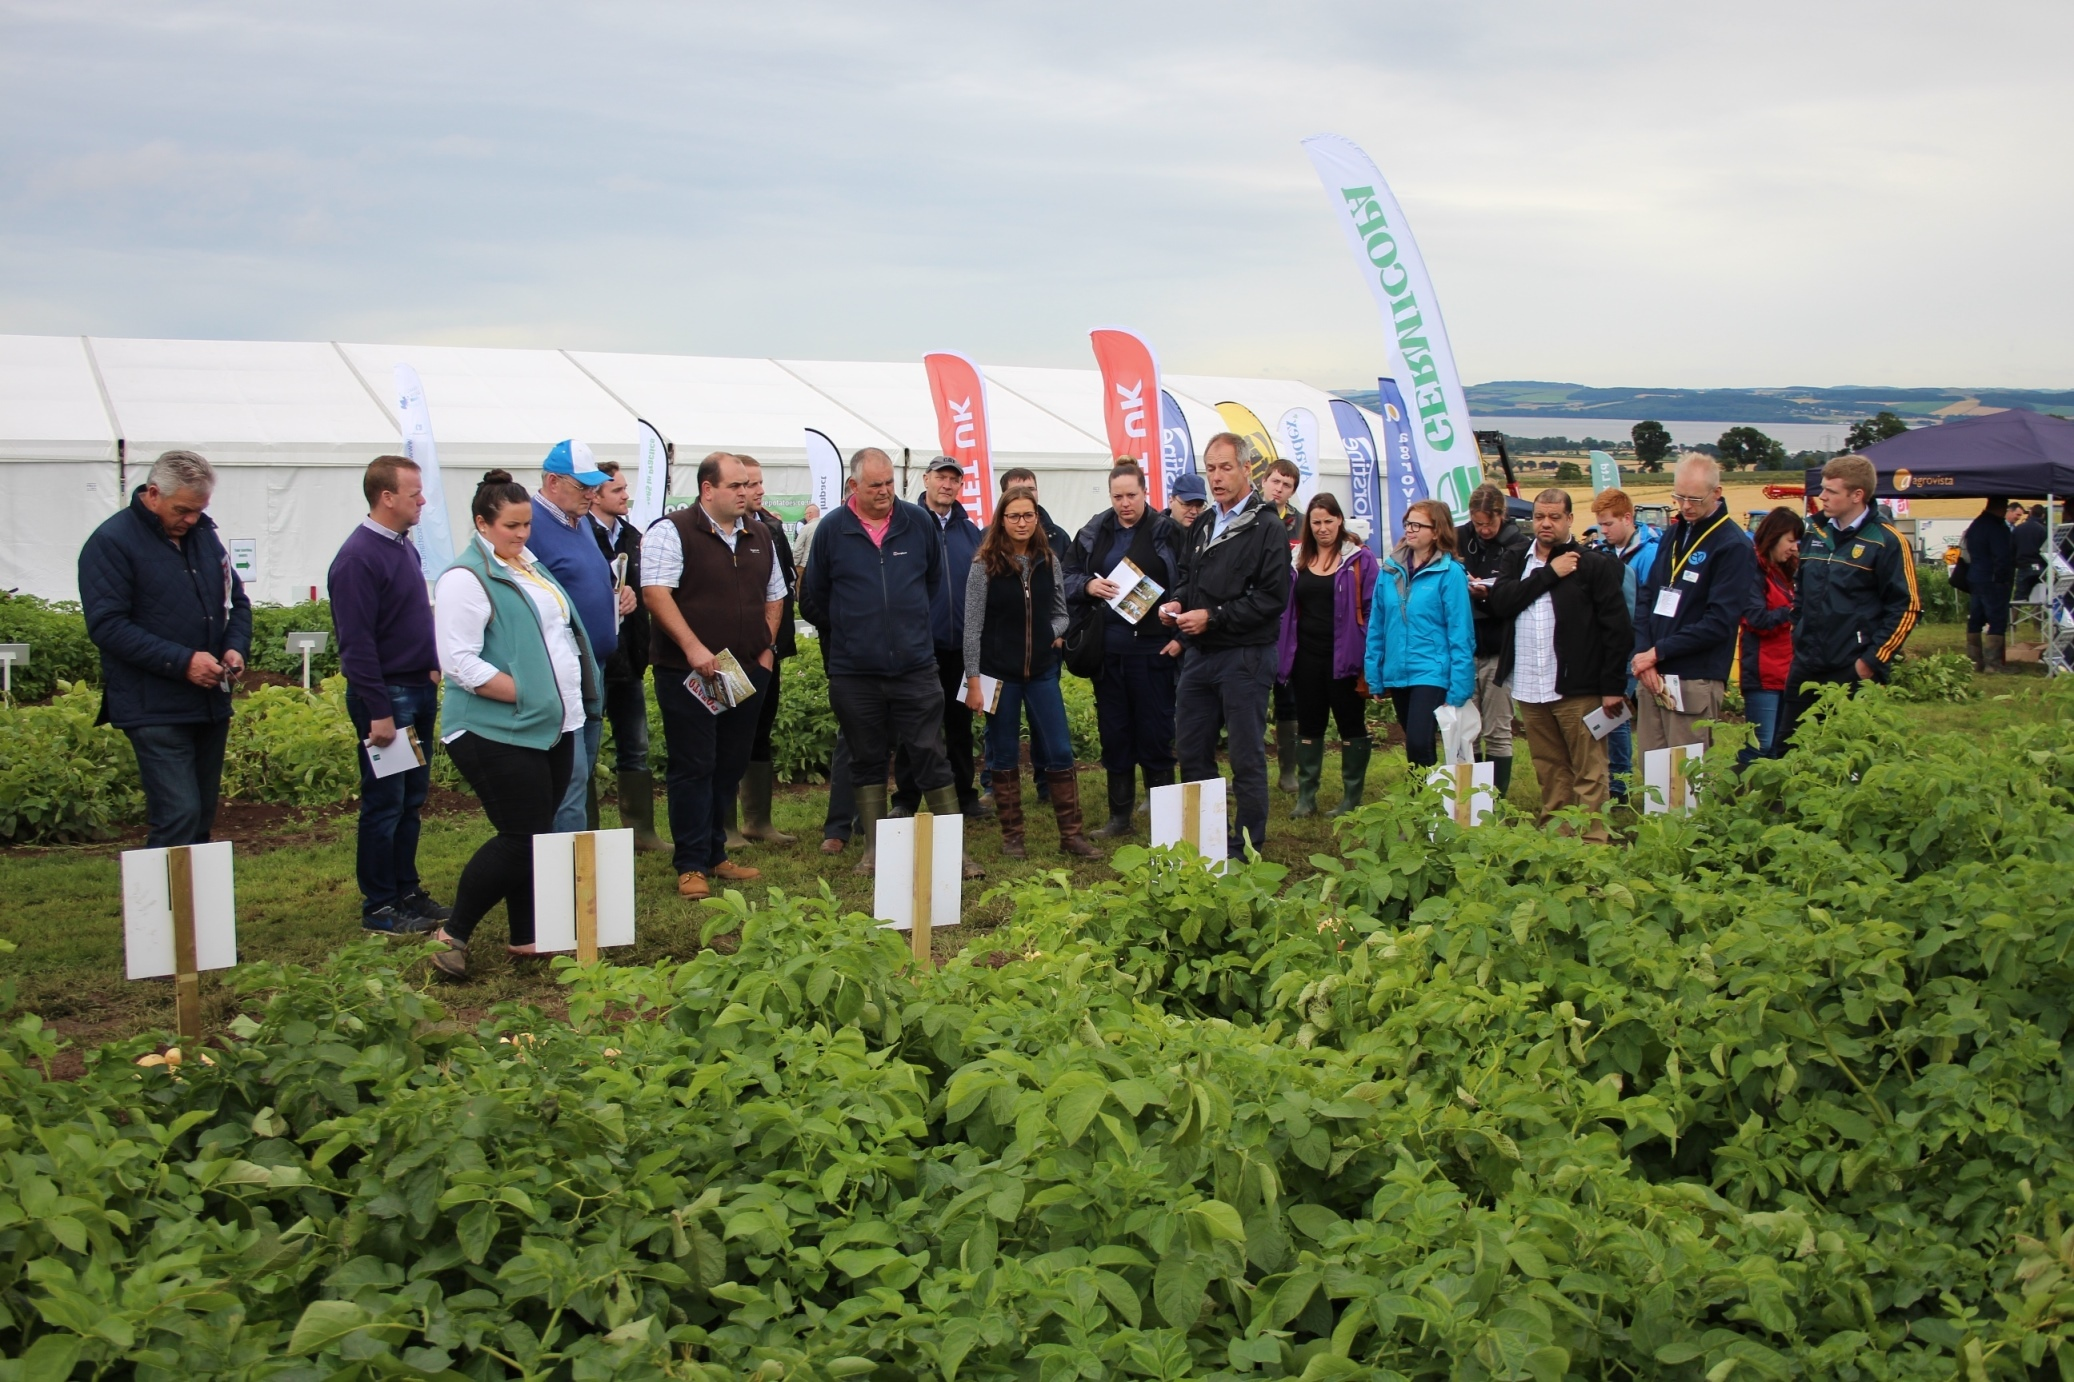 Growers will get access to the latest science, technology and practical advice